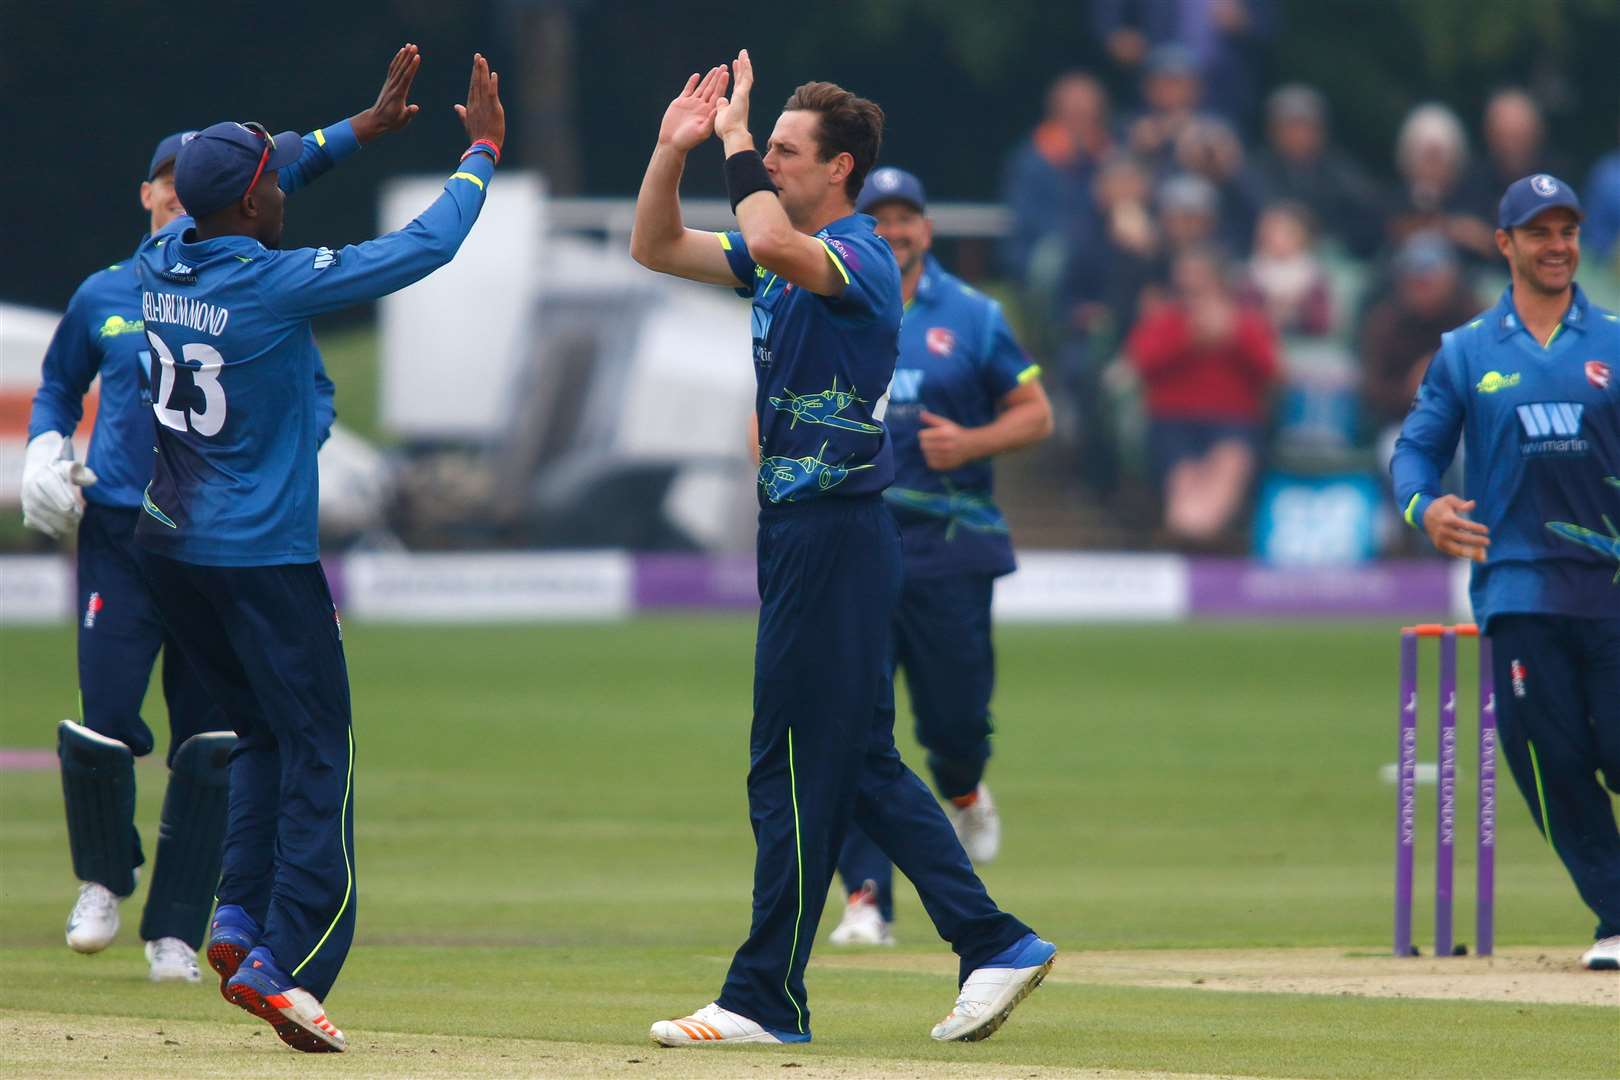 RLODC 2018..Kent Spitfires (Bowling) v Somerset (Batting) Matt Henry celebrates removing Johann Myburgh..Kent Cricket Club, Spitfire St Lawrence, Canterbury. CT1 3NZ.Picture: Andy Jones. (34743877)